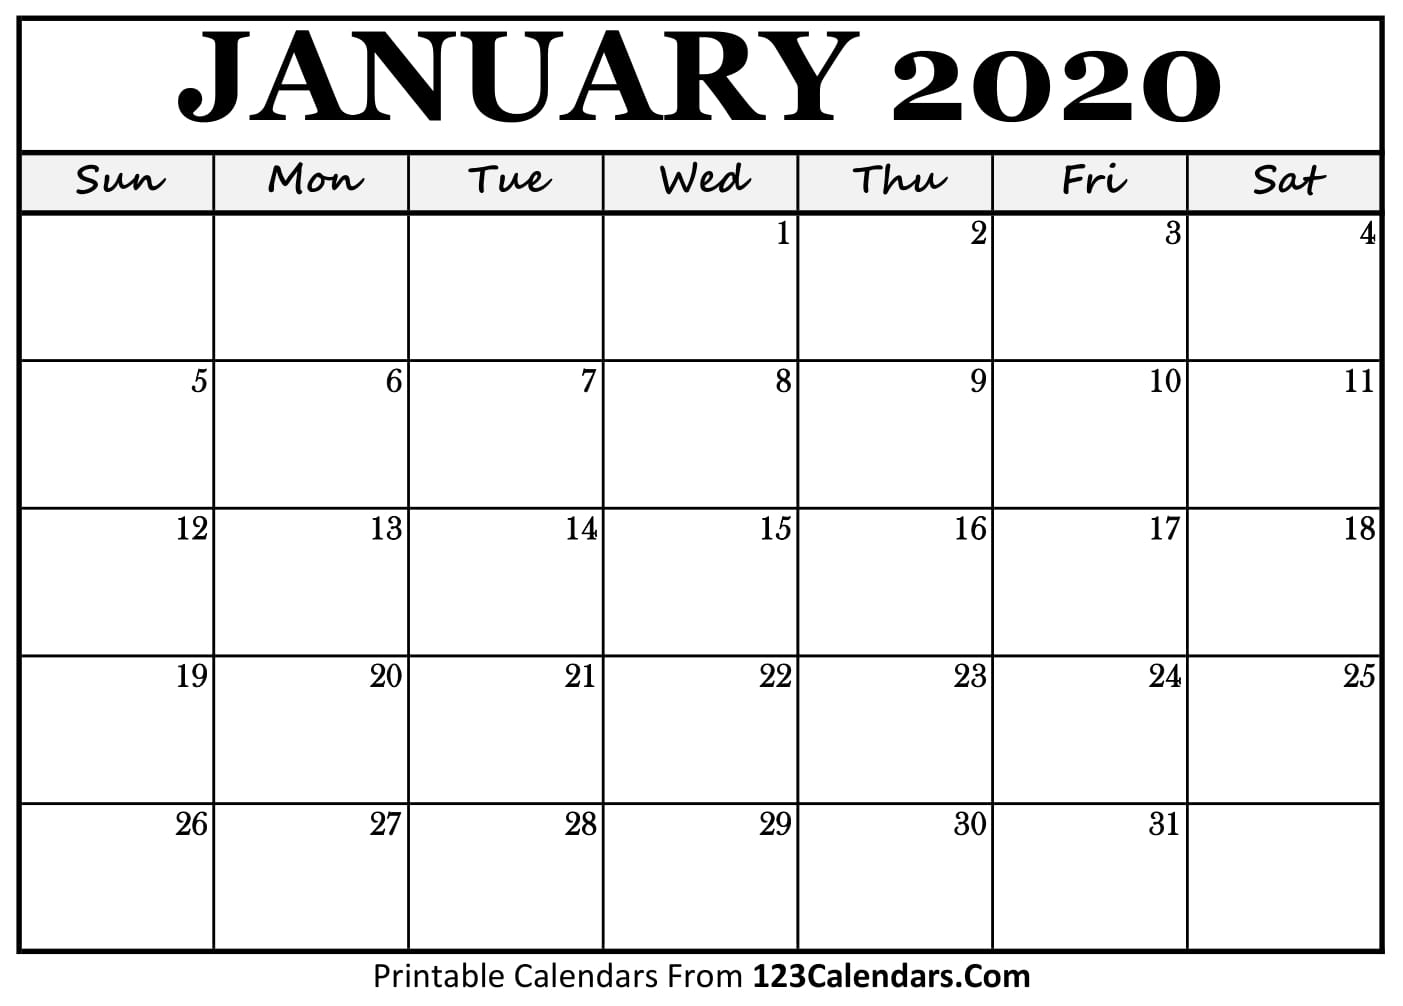 January 2020 Printable Calendar | 123Calendars with 123 Calendar January 2020